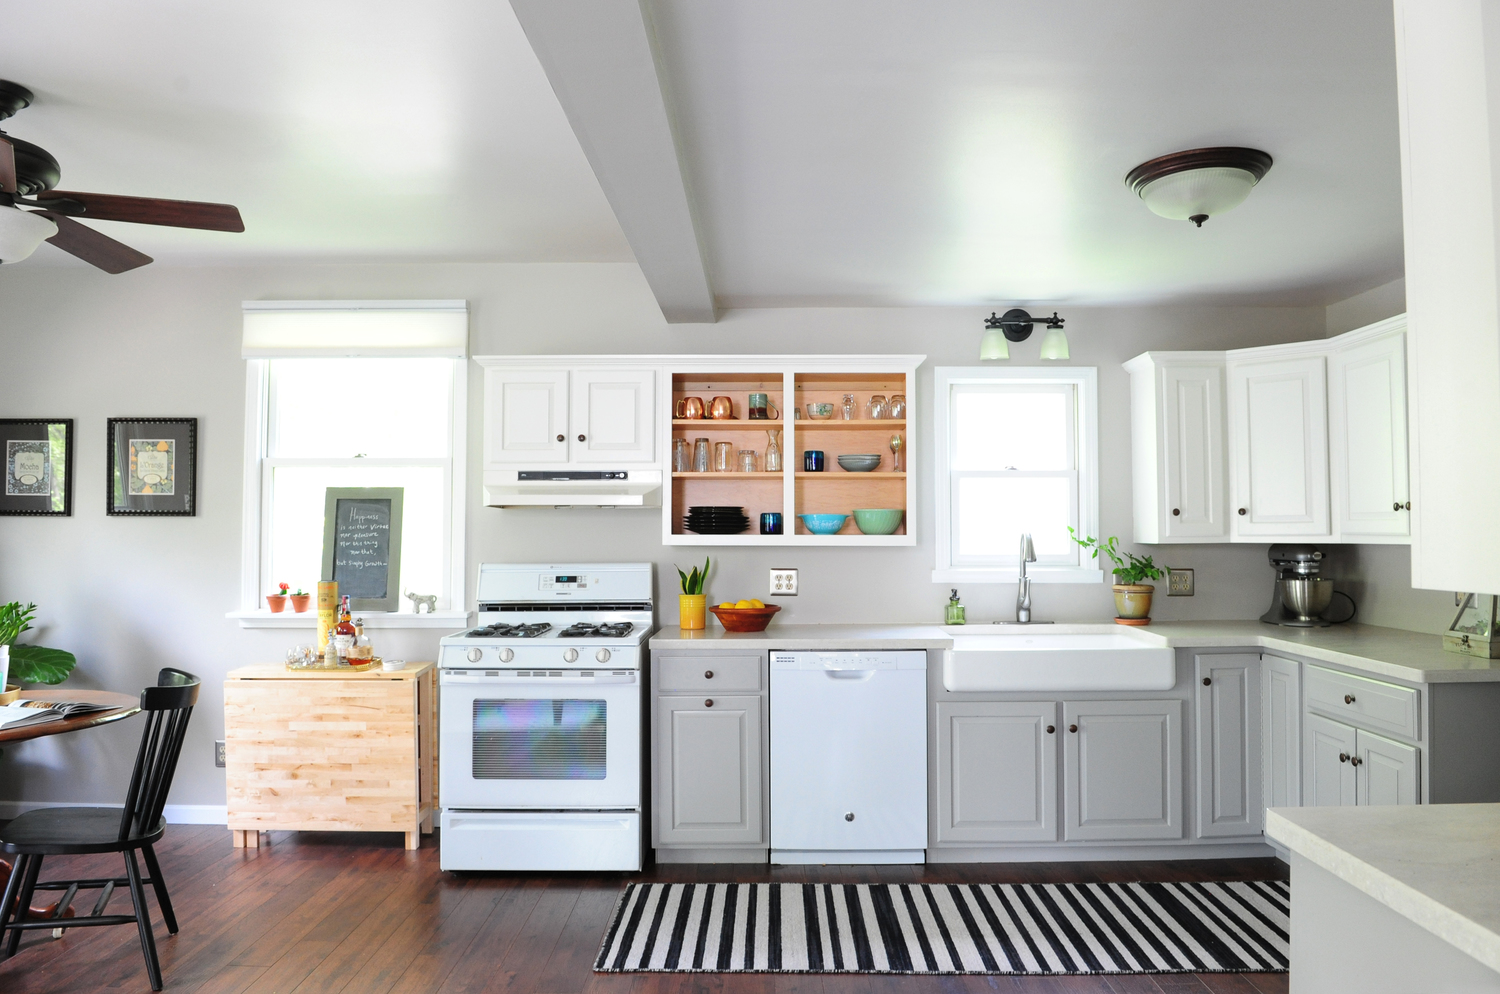 Simple, affordable kitchen update. Cabinets painted; vinyl floors swapped to plank laminate; drop-in stainless steel sink replaced with an apron farmhouse sink; laminate countertops upgraded to solid surface. The before can be found  here .